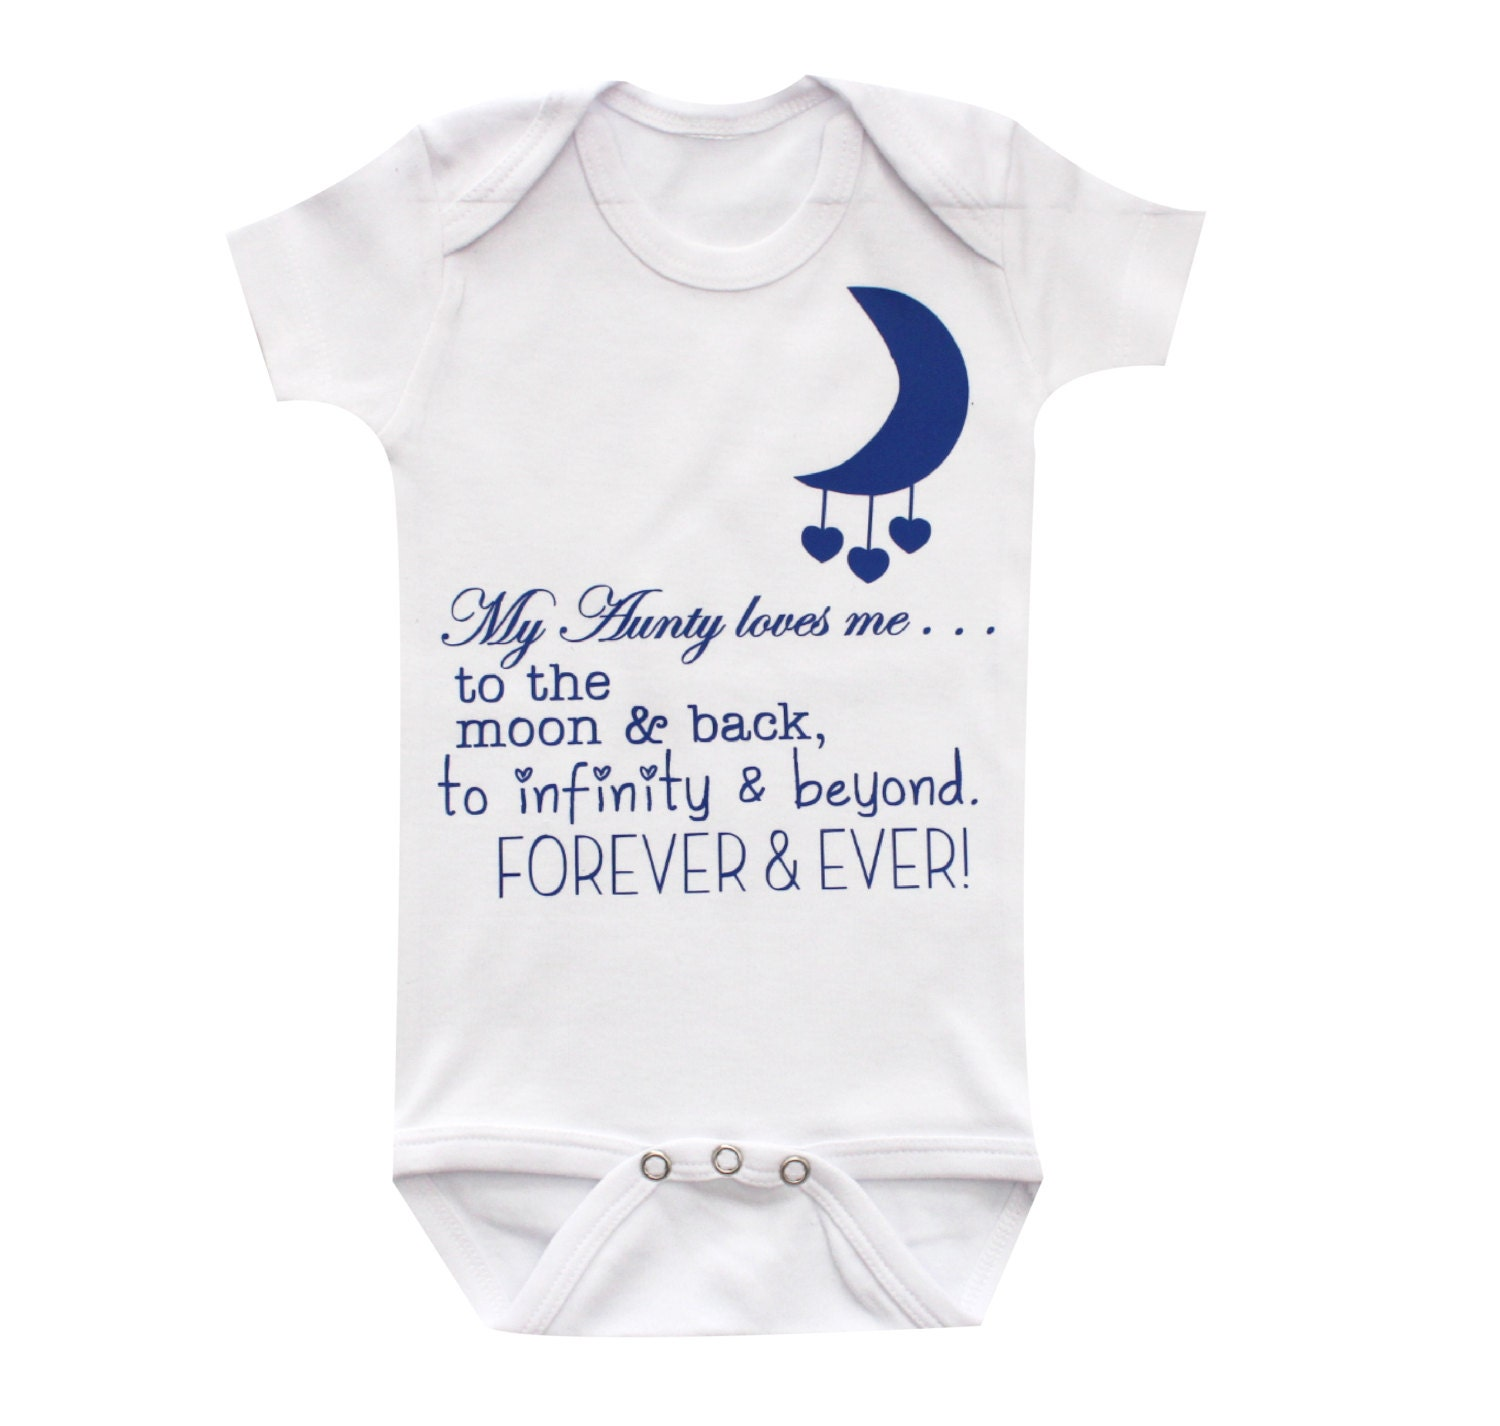 Aunt baby clothing Aunty loves you to the moon and back cute